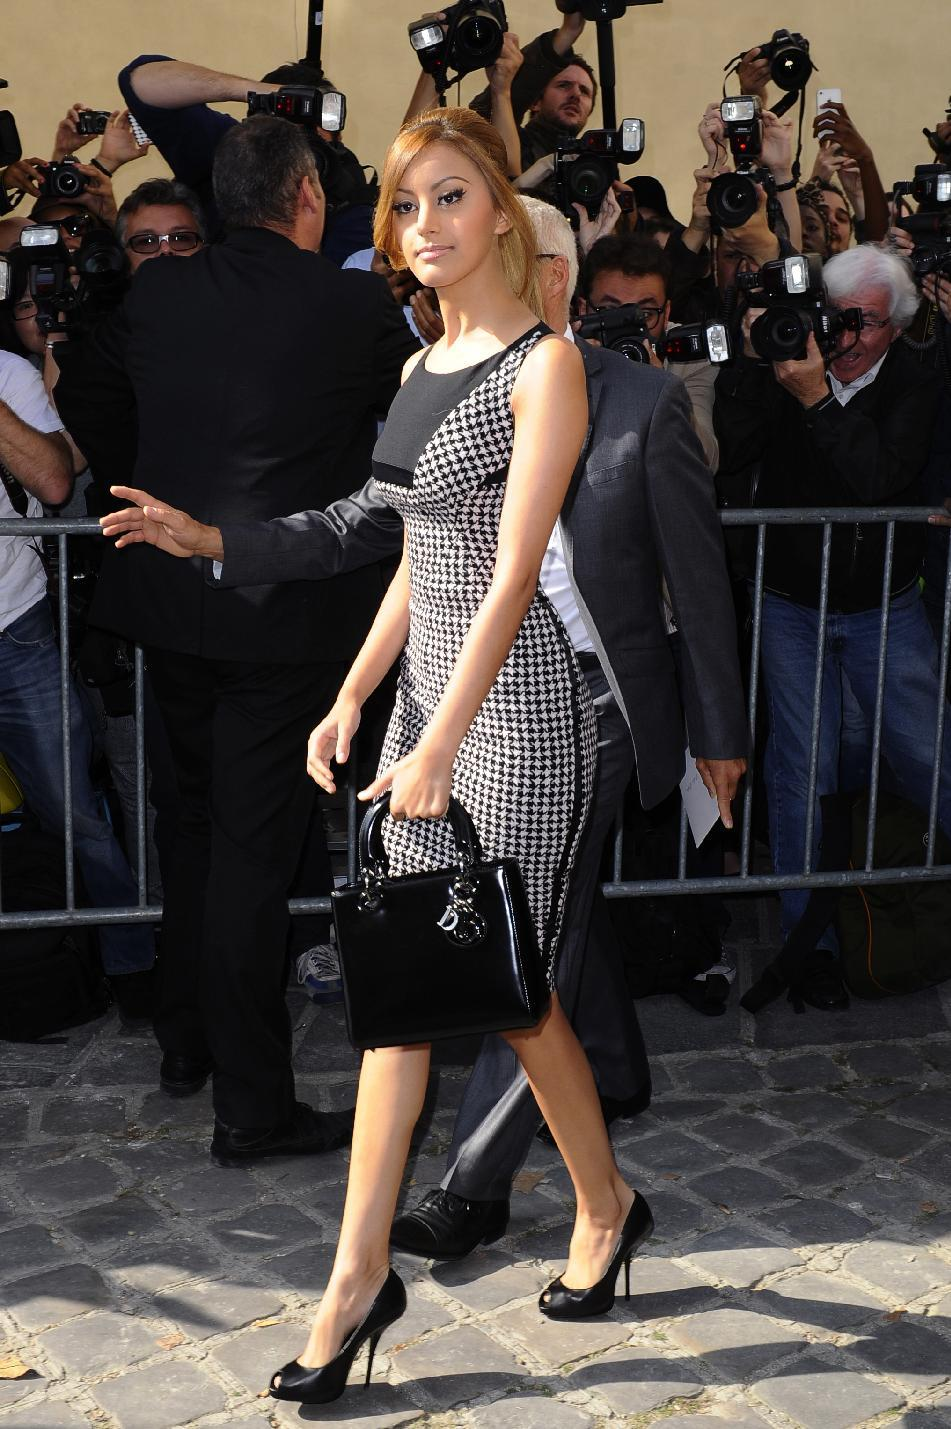 Zahia Dehar arrives to attend Christian Dior's ready-to-wear Spring/Summer 2014 fashion collection, presented Friday, Sept. 27, 2013 in Paris. (AP Photo/Zacharie Scheurer)